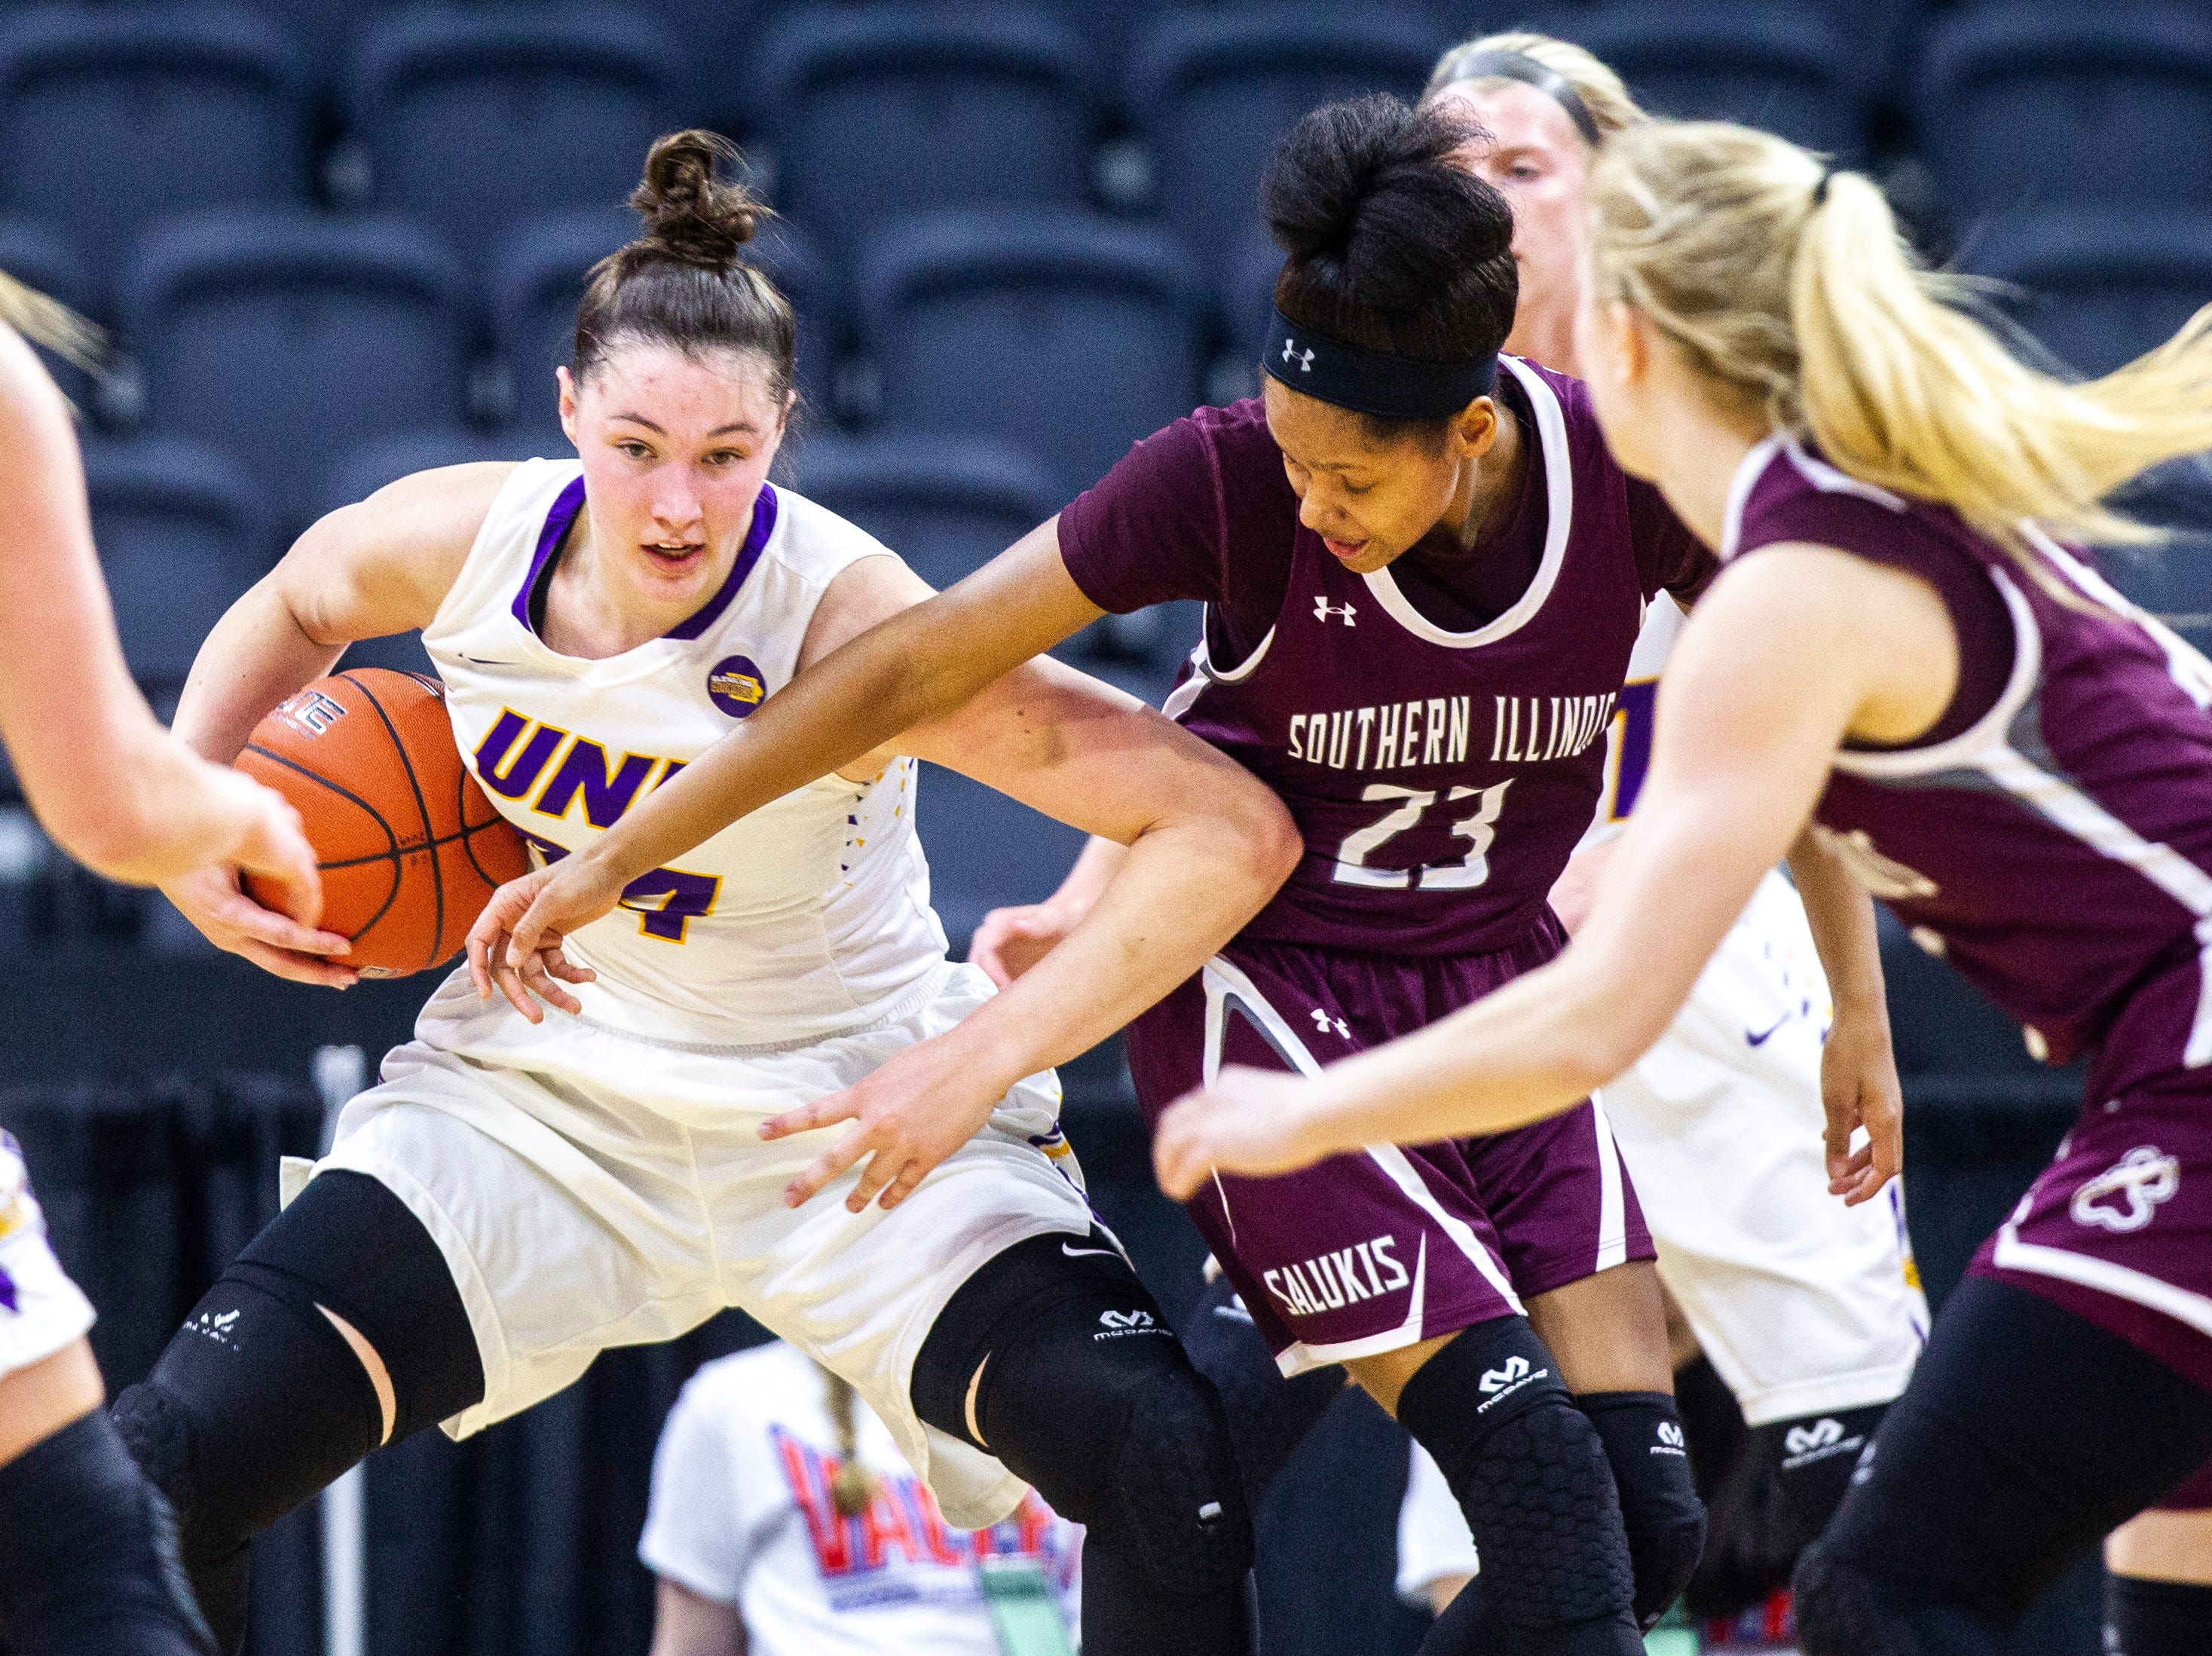 Northern Iowa forward Taylor Hagen (34) pulls down a rebound against Southern Illinois guard Kristen Nelson (23) during a NCAA Missouri Valley Conference women's basketball quarterfinal tournament game, Friday, March 15, 2019, at the TaxSlayer Center in Moline, Illinois.